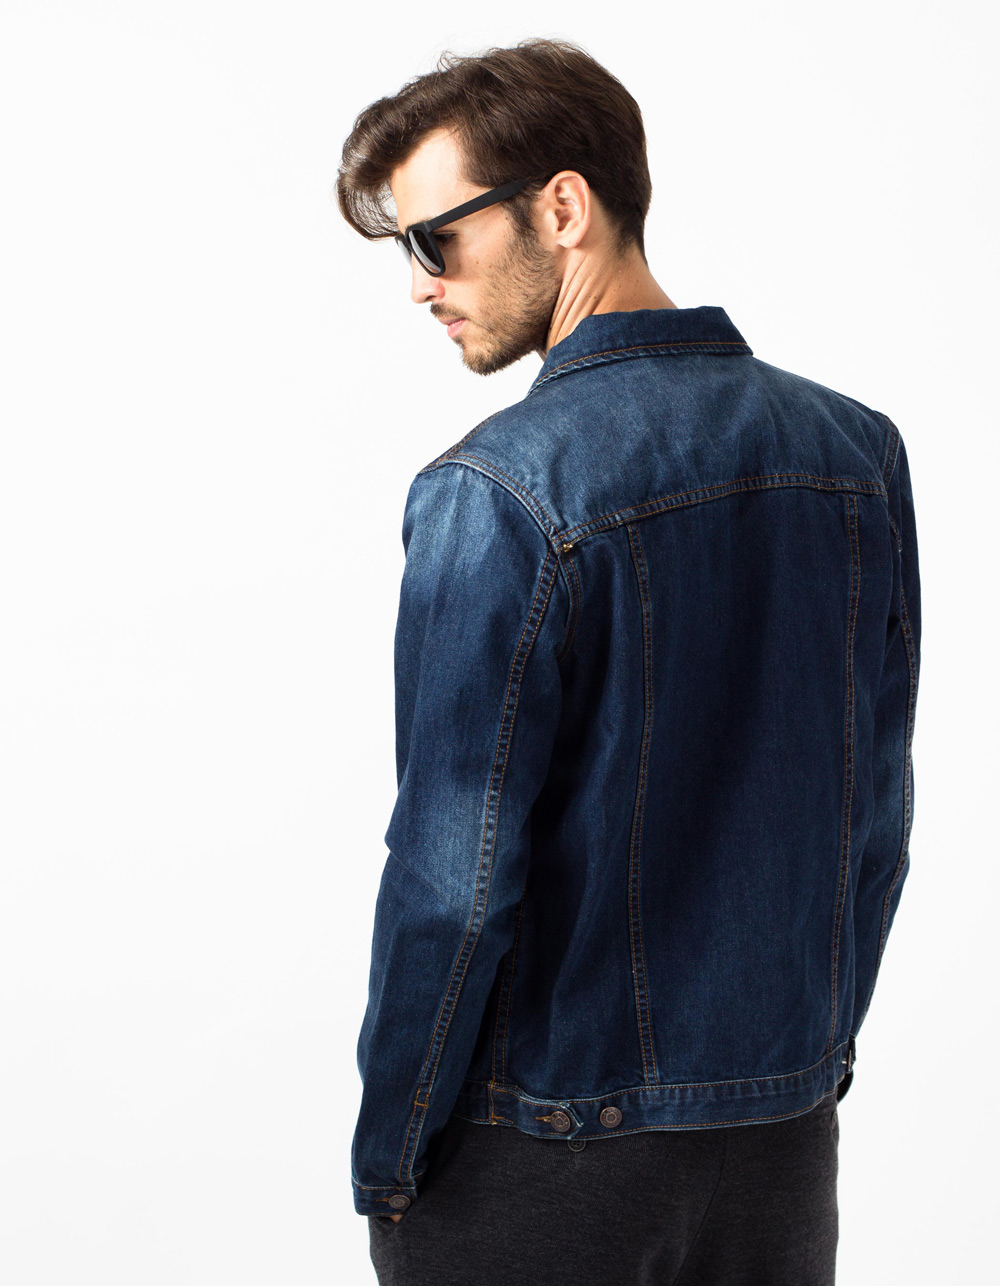 Denim jacket - Backside